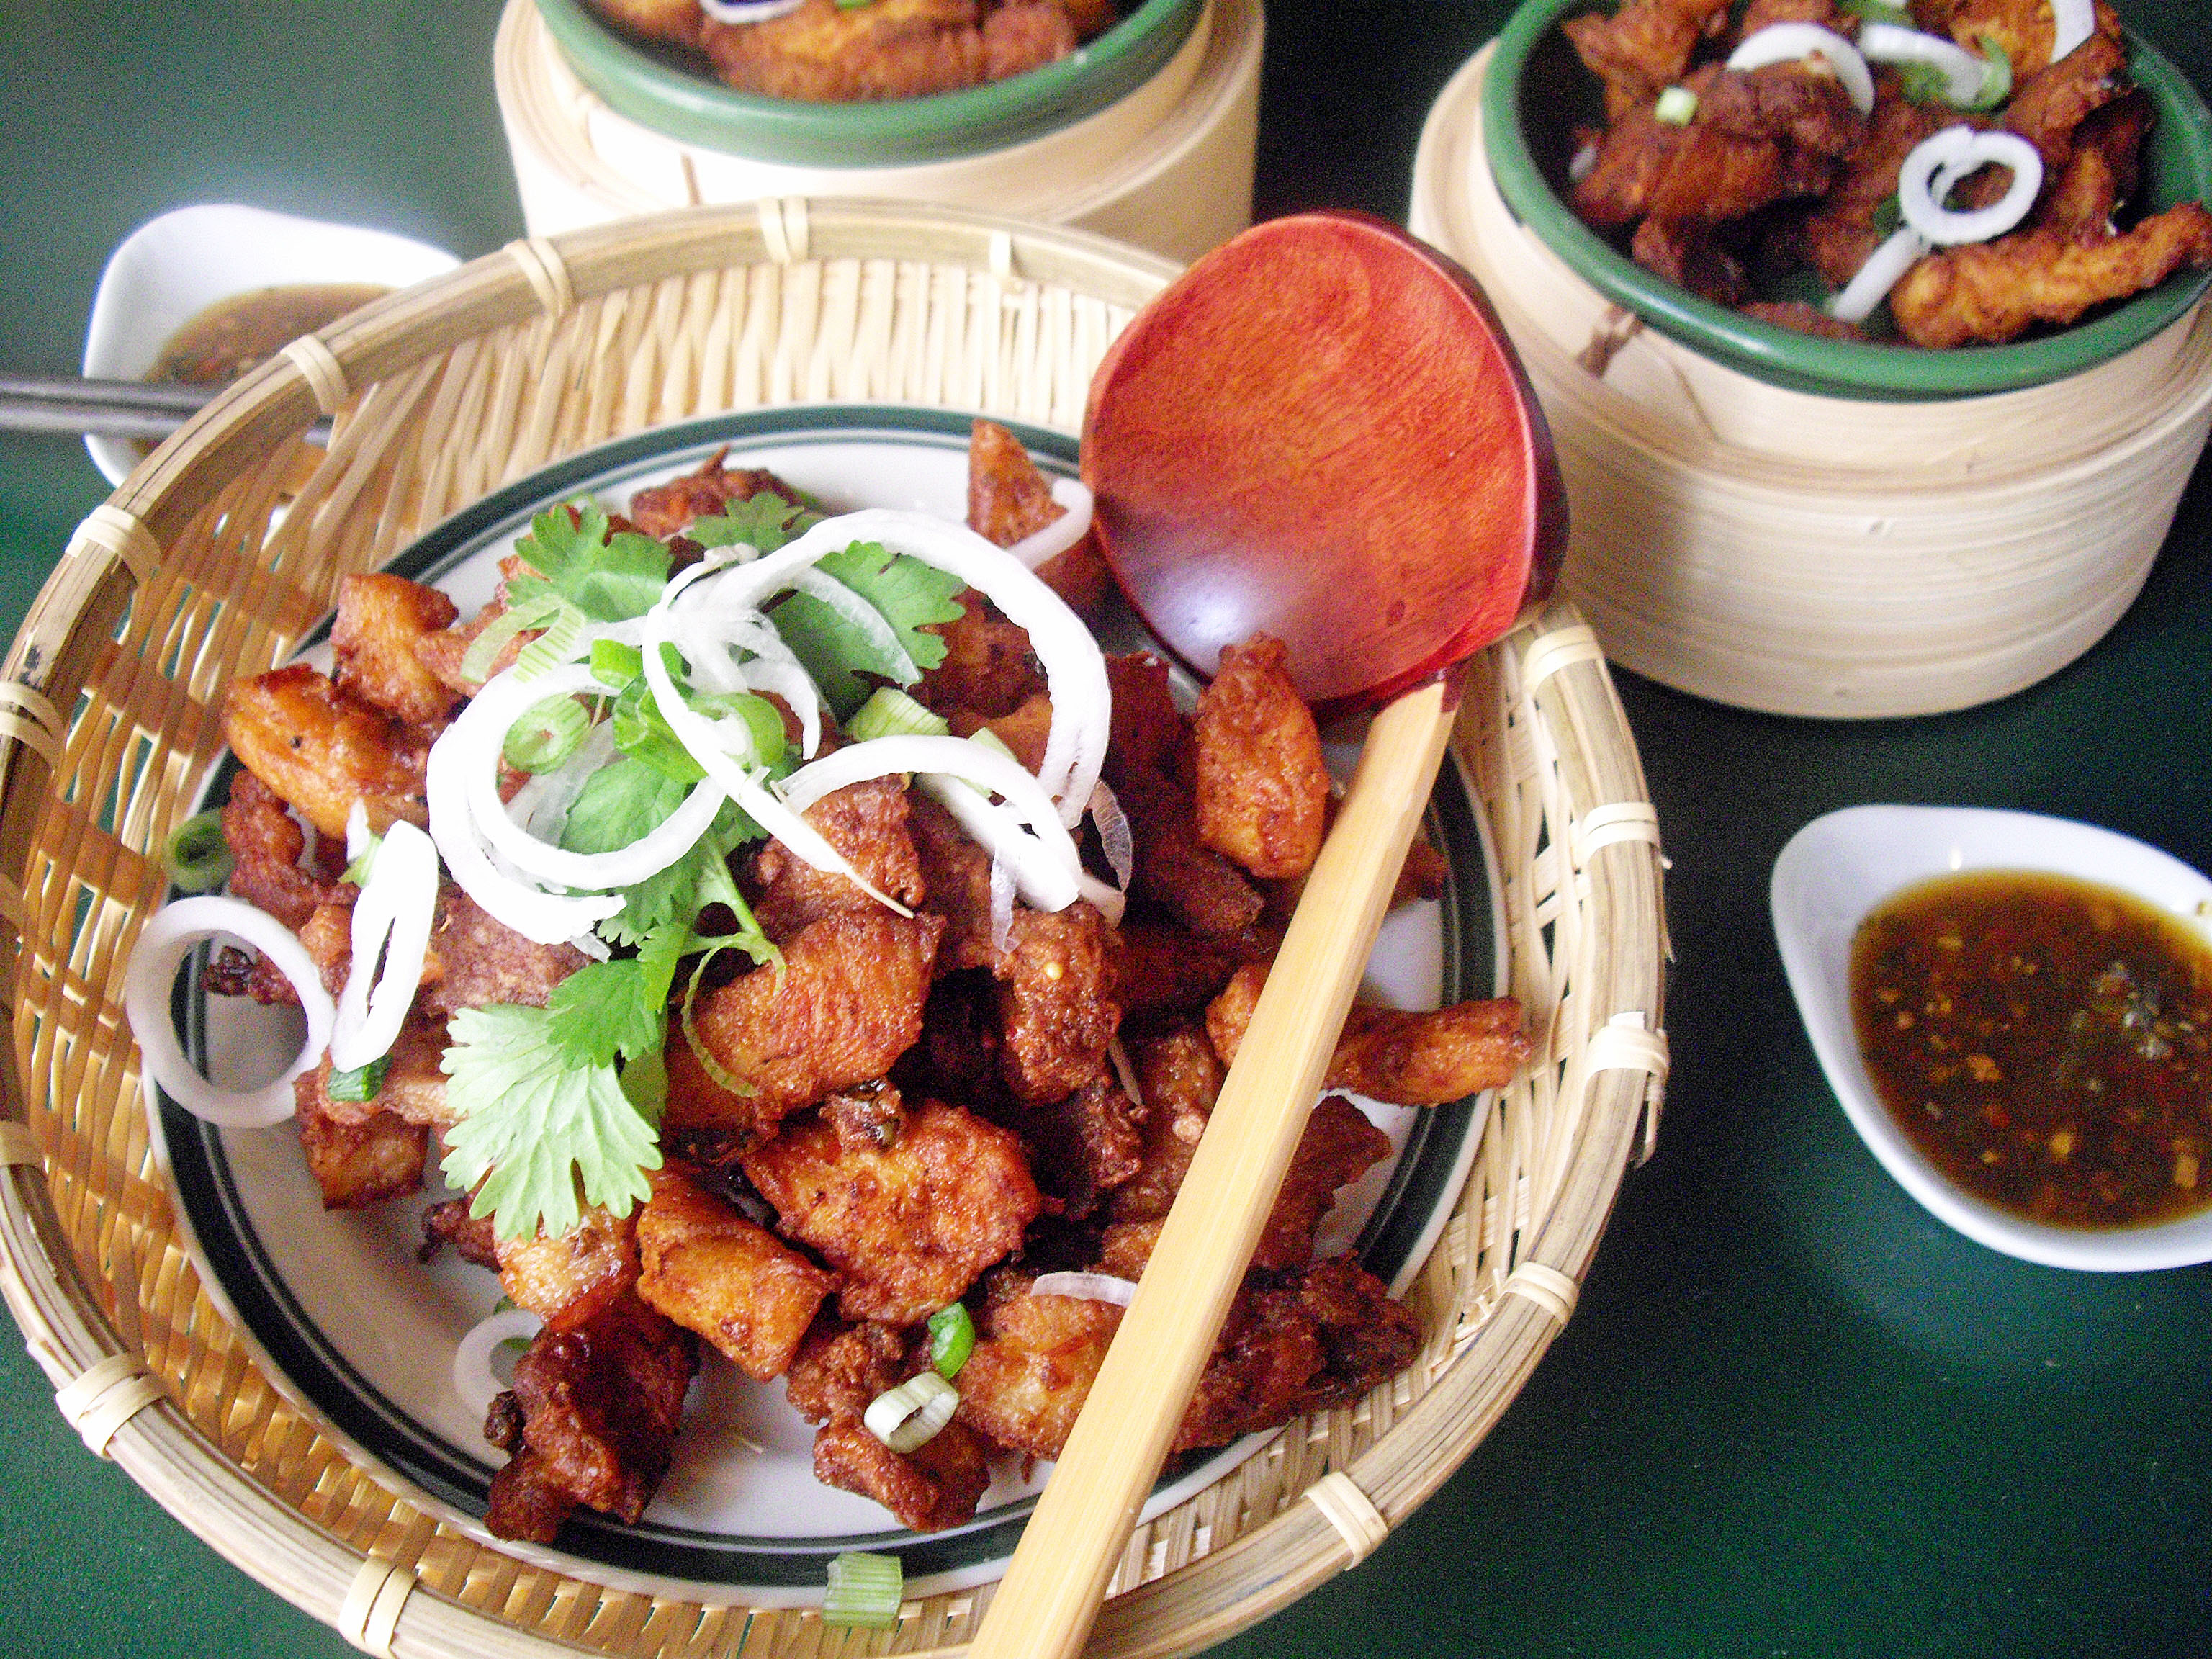 The crispy fried pork belly and chicken can also serve as an appetizer ...